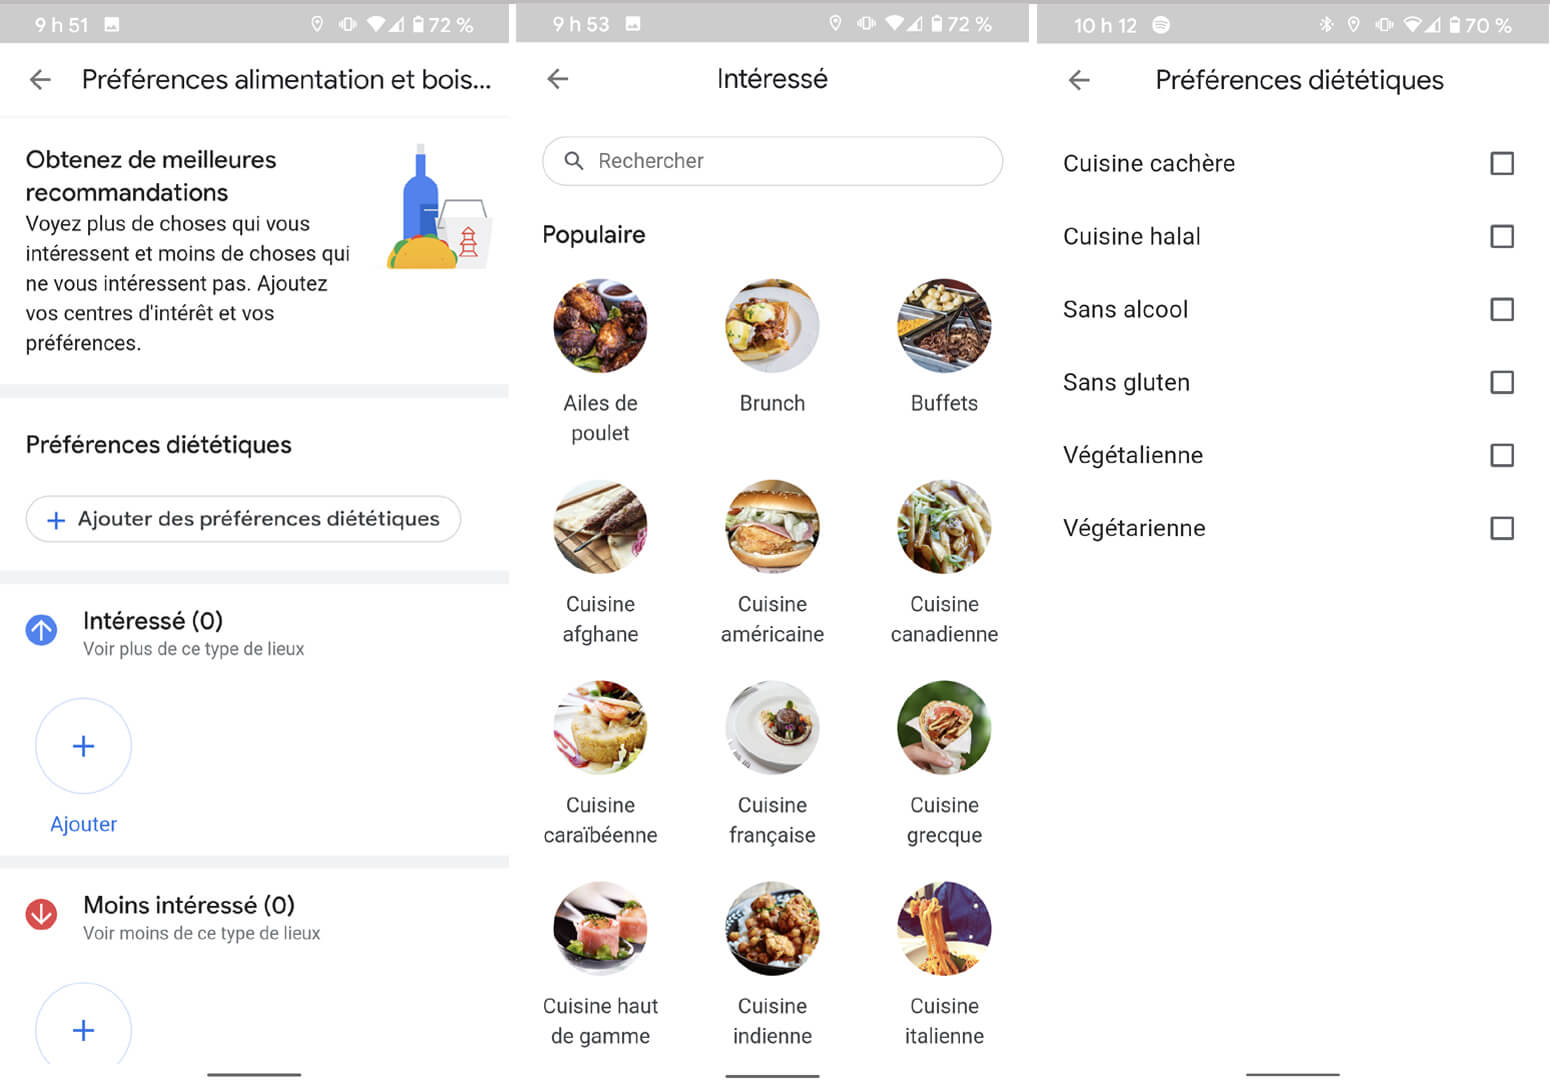 Google Maps application intérêt cuisine restrictions alimentaires